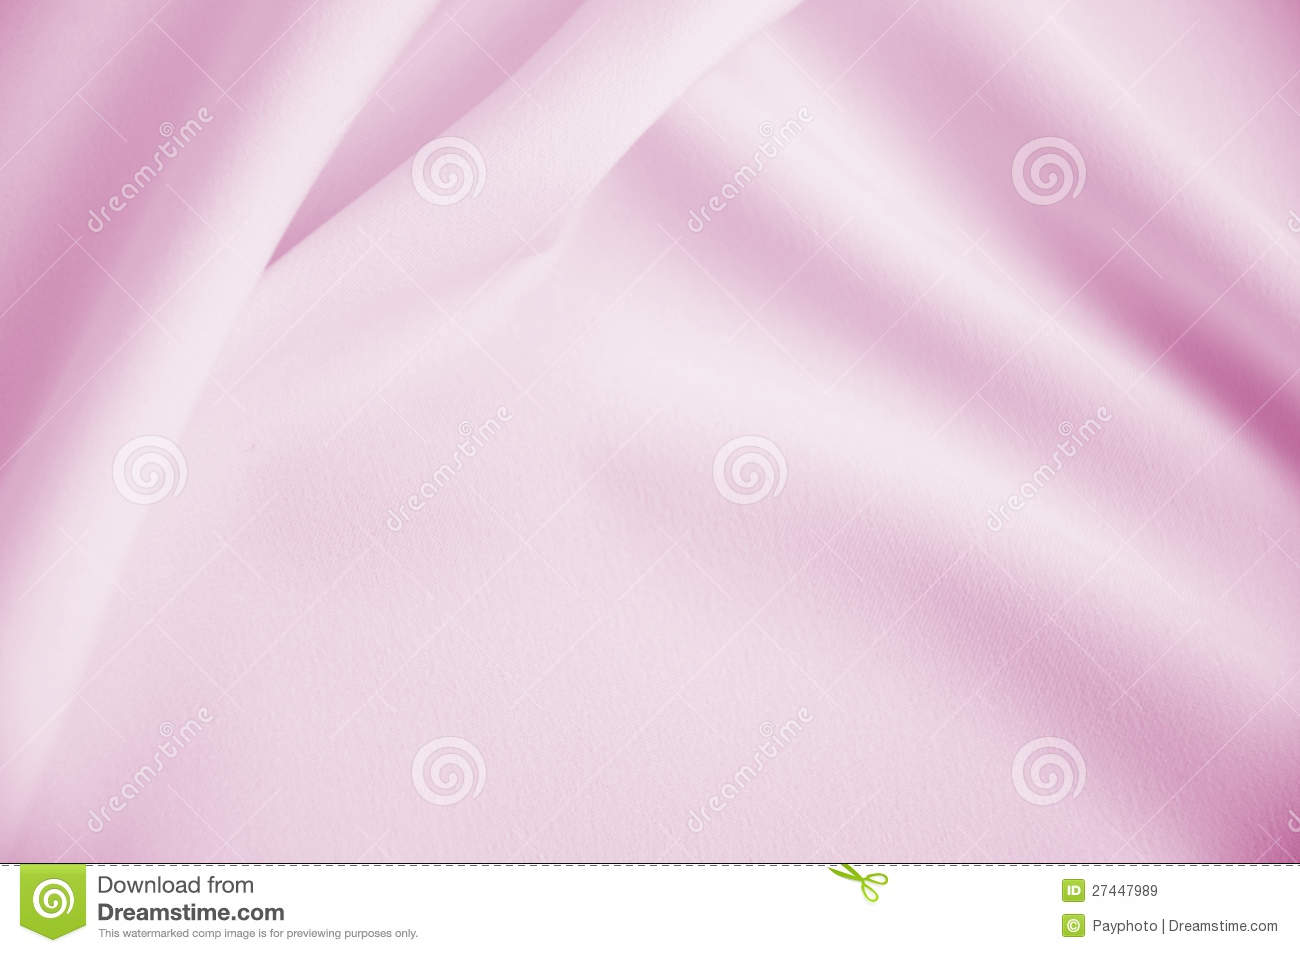 Smooth pink satin background with shine  folds  creases and copyspace Pink Satin Background